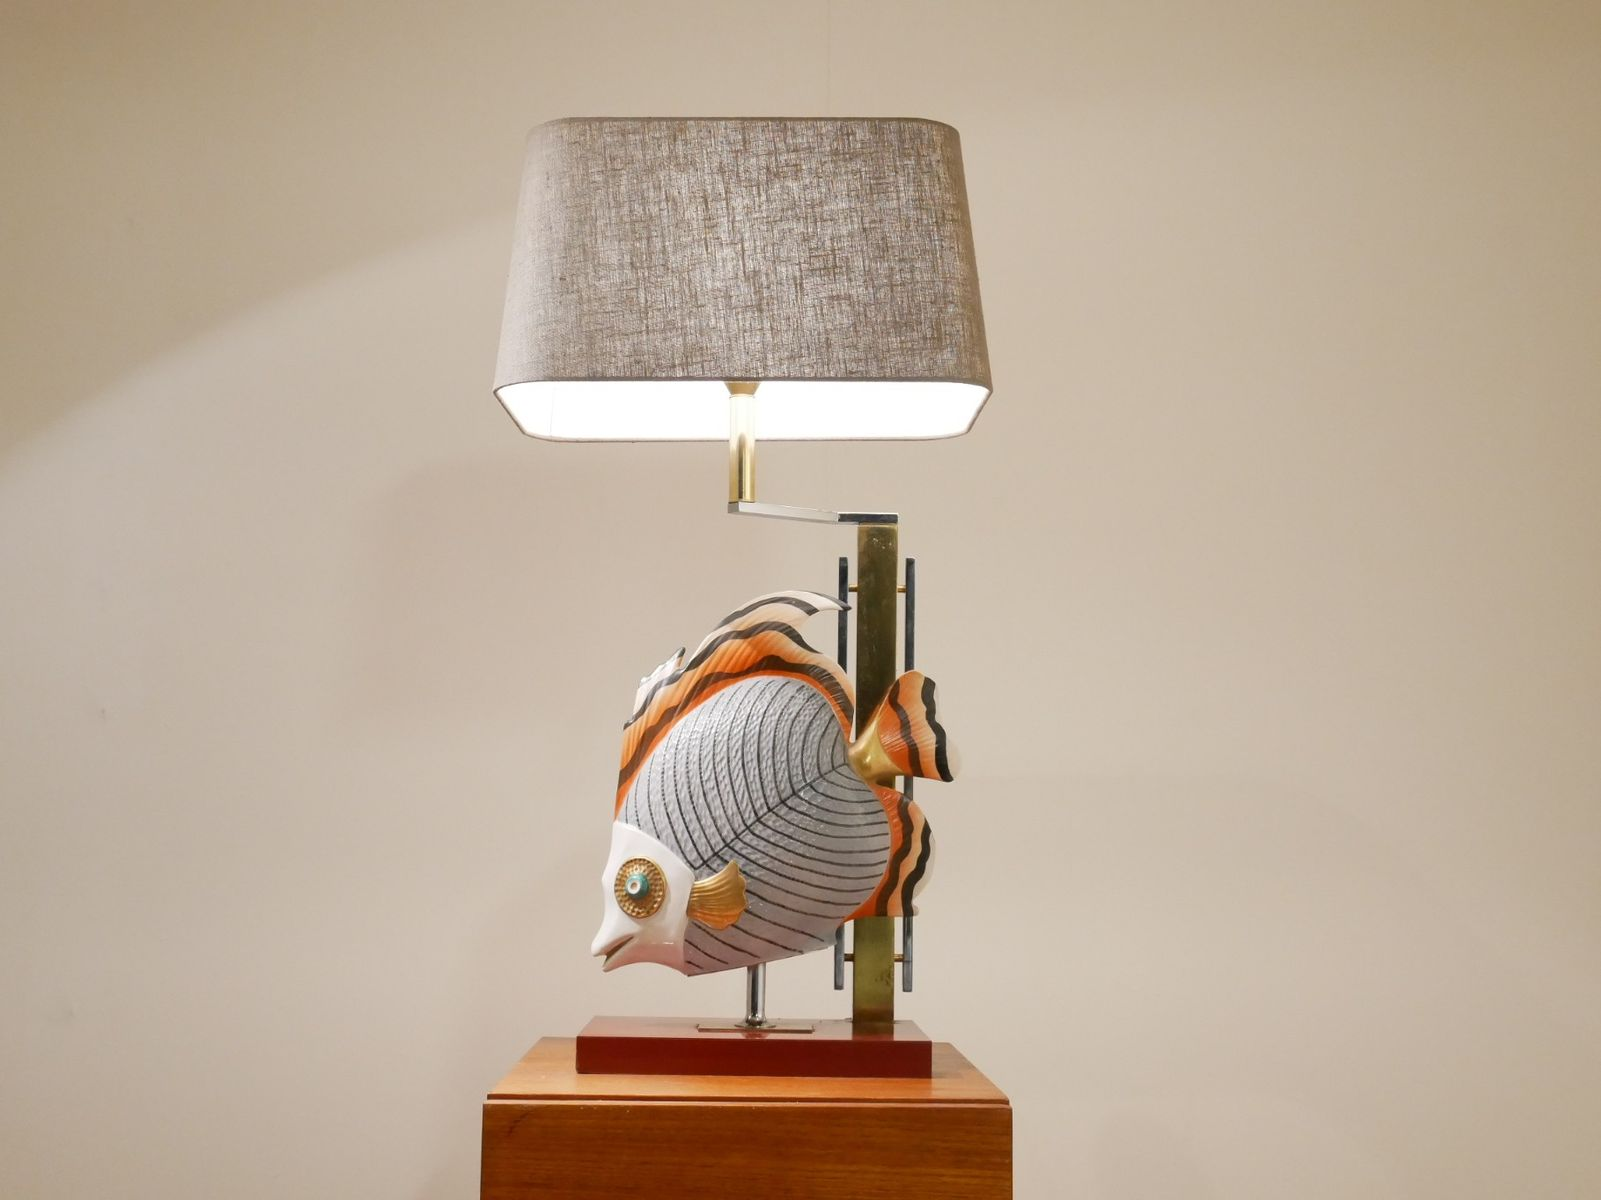 Vintage large tropical fish bicolored metal table lamp by ninaber vintage large tropical fish bicolored metal table lamp by ninaber van eyben aloadofball Image collections